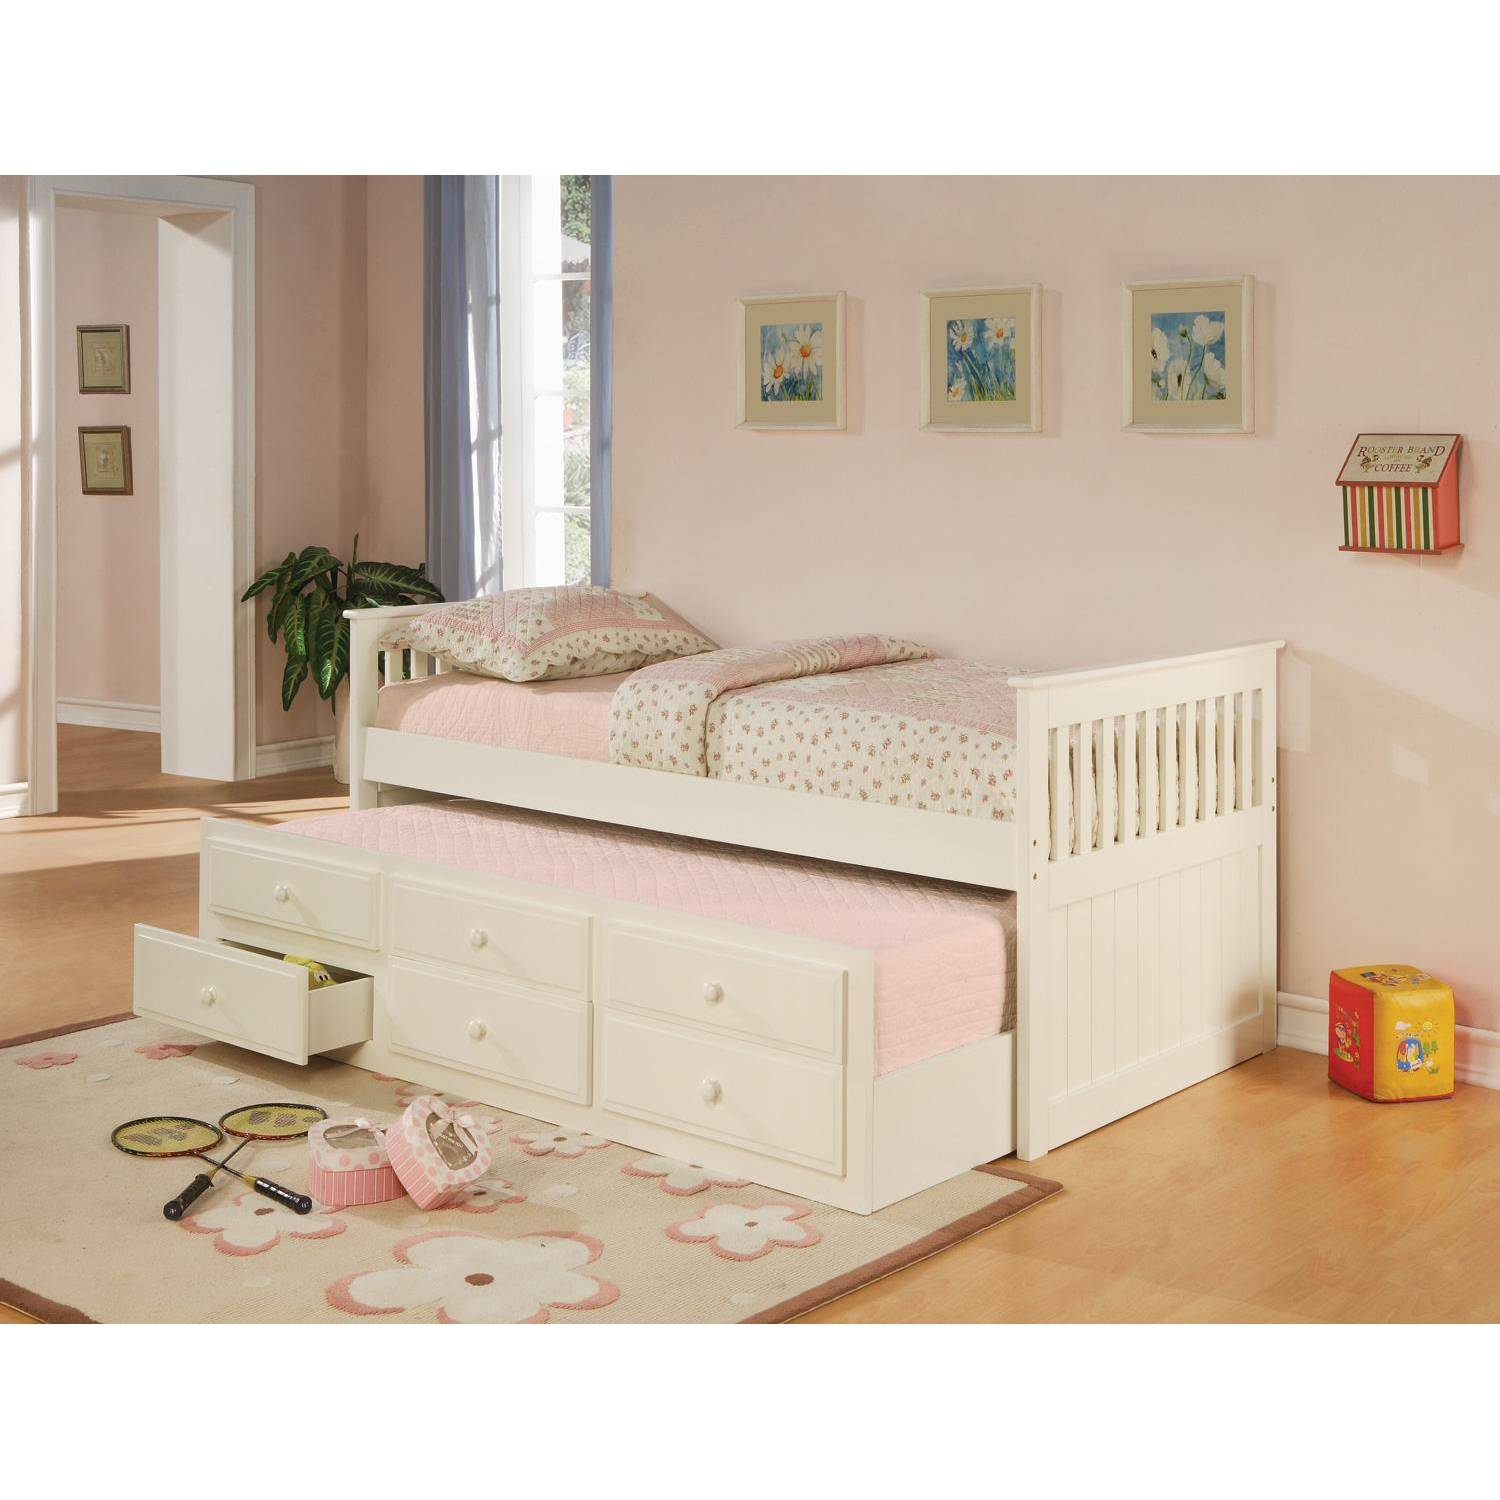 La Salle Twin Captains Bed With Trundle And Storage Drawers